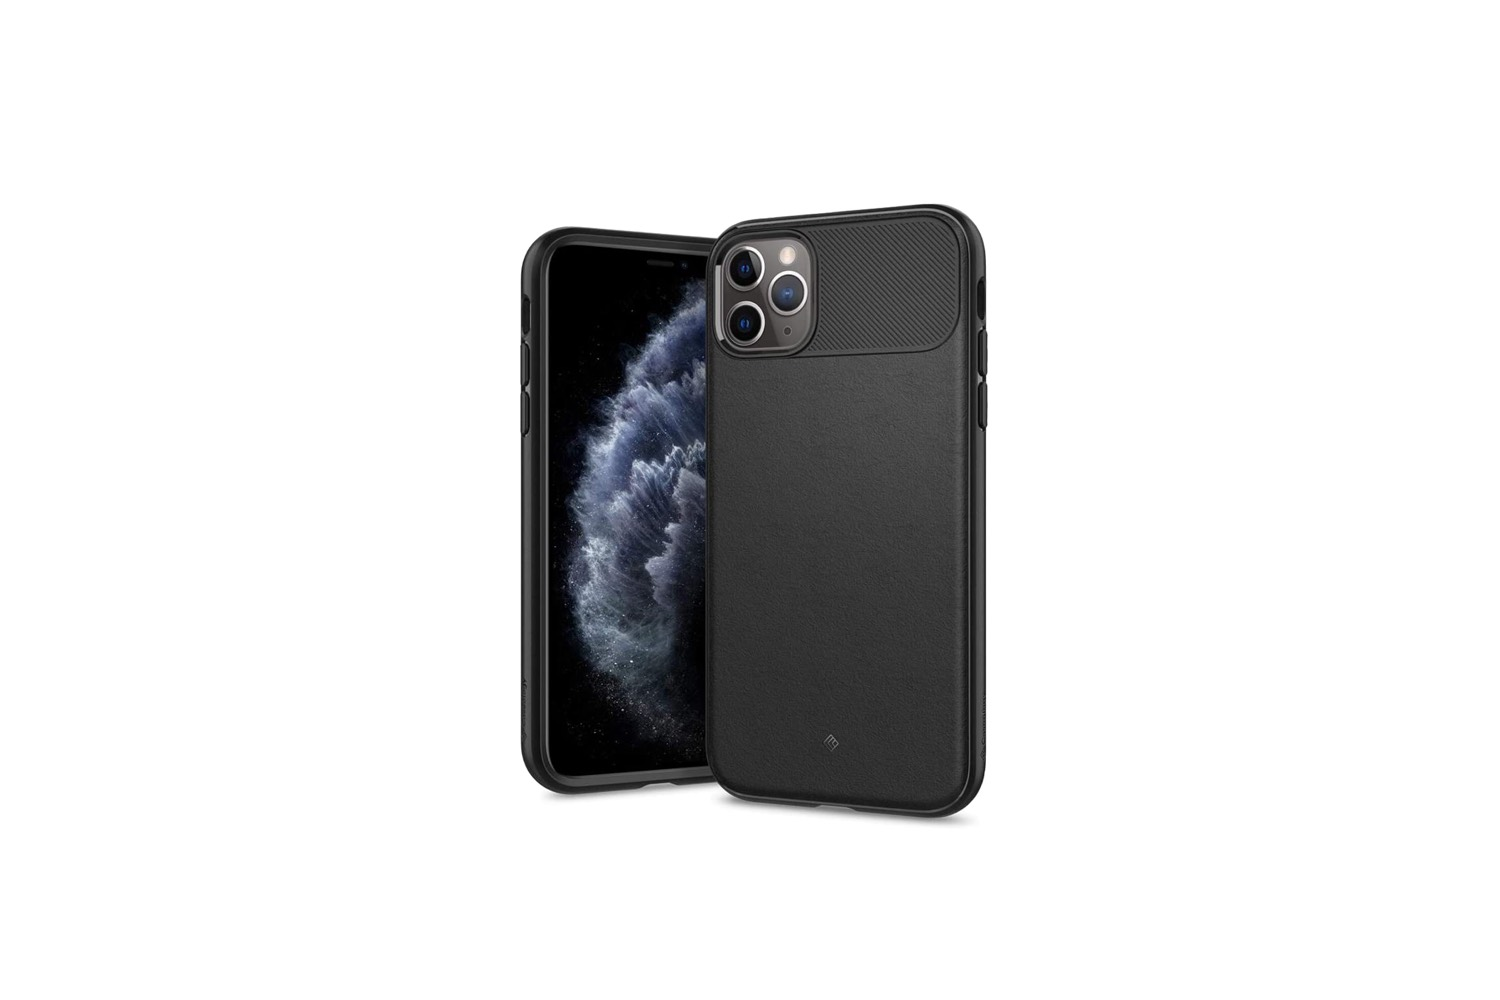 Customize Your Apple iPhone 11 Pro Max With Discounted $4 Caseology Vault Case